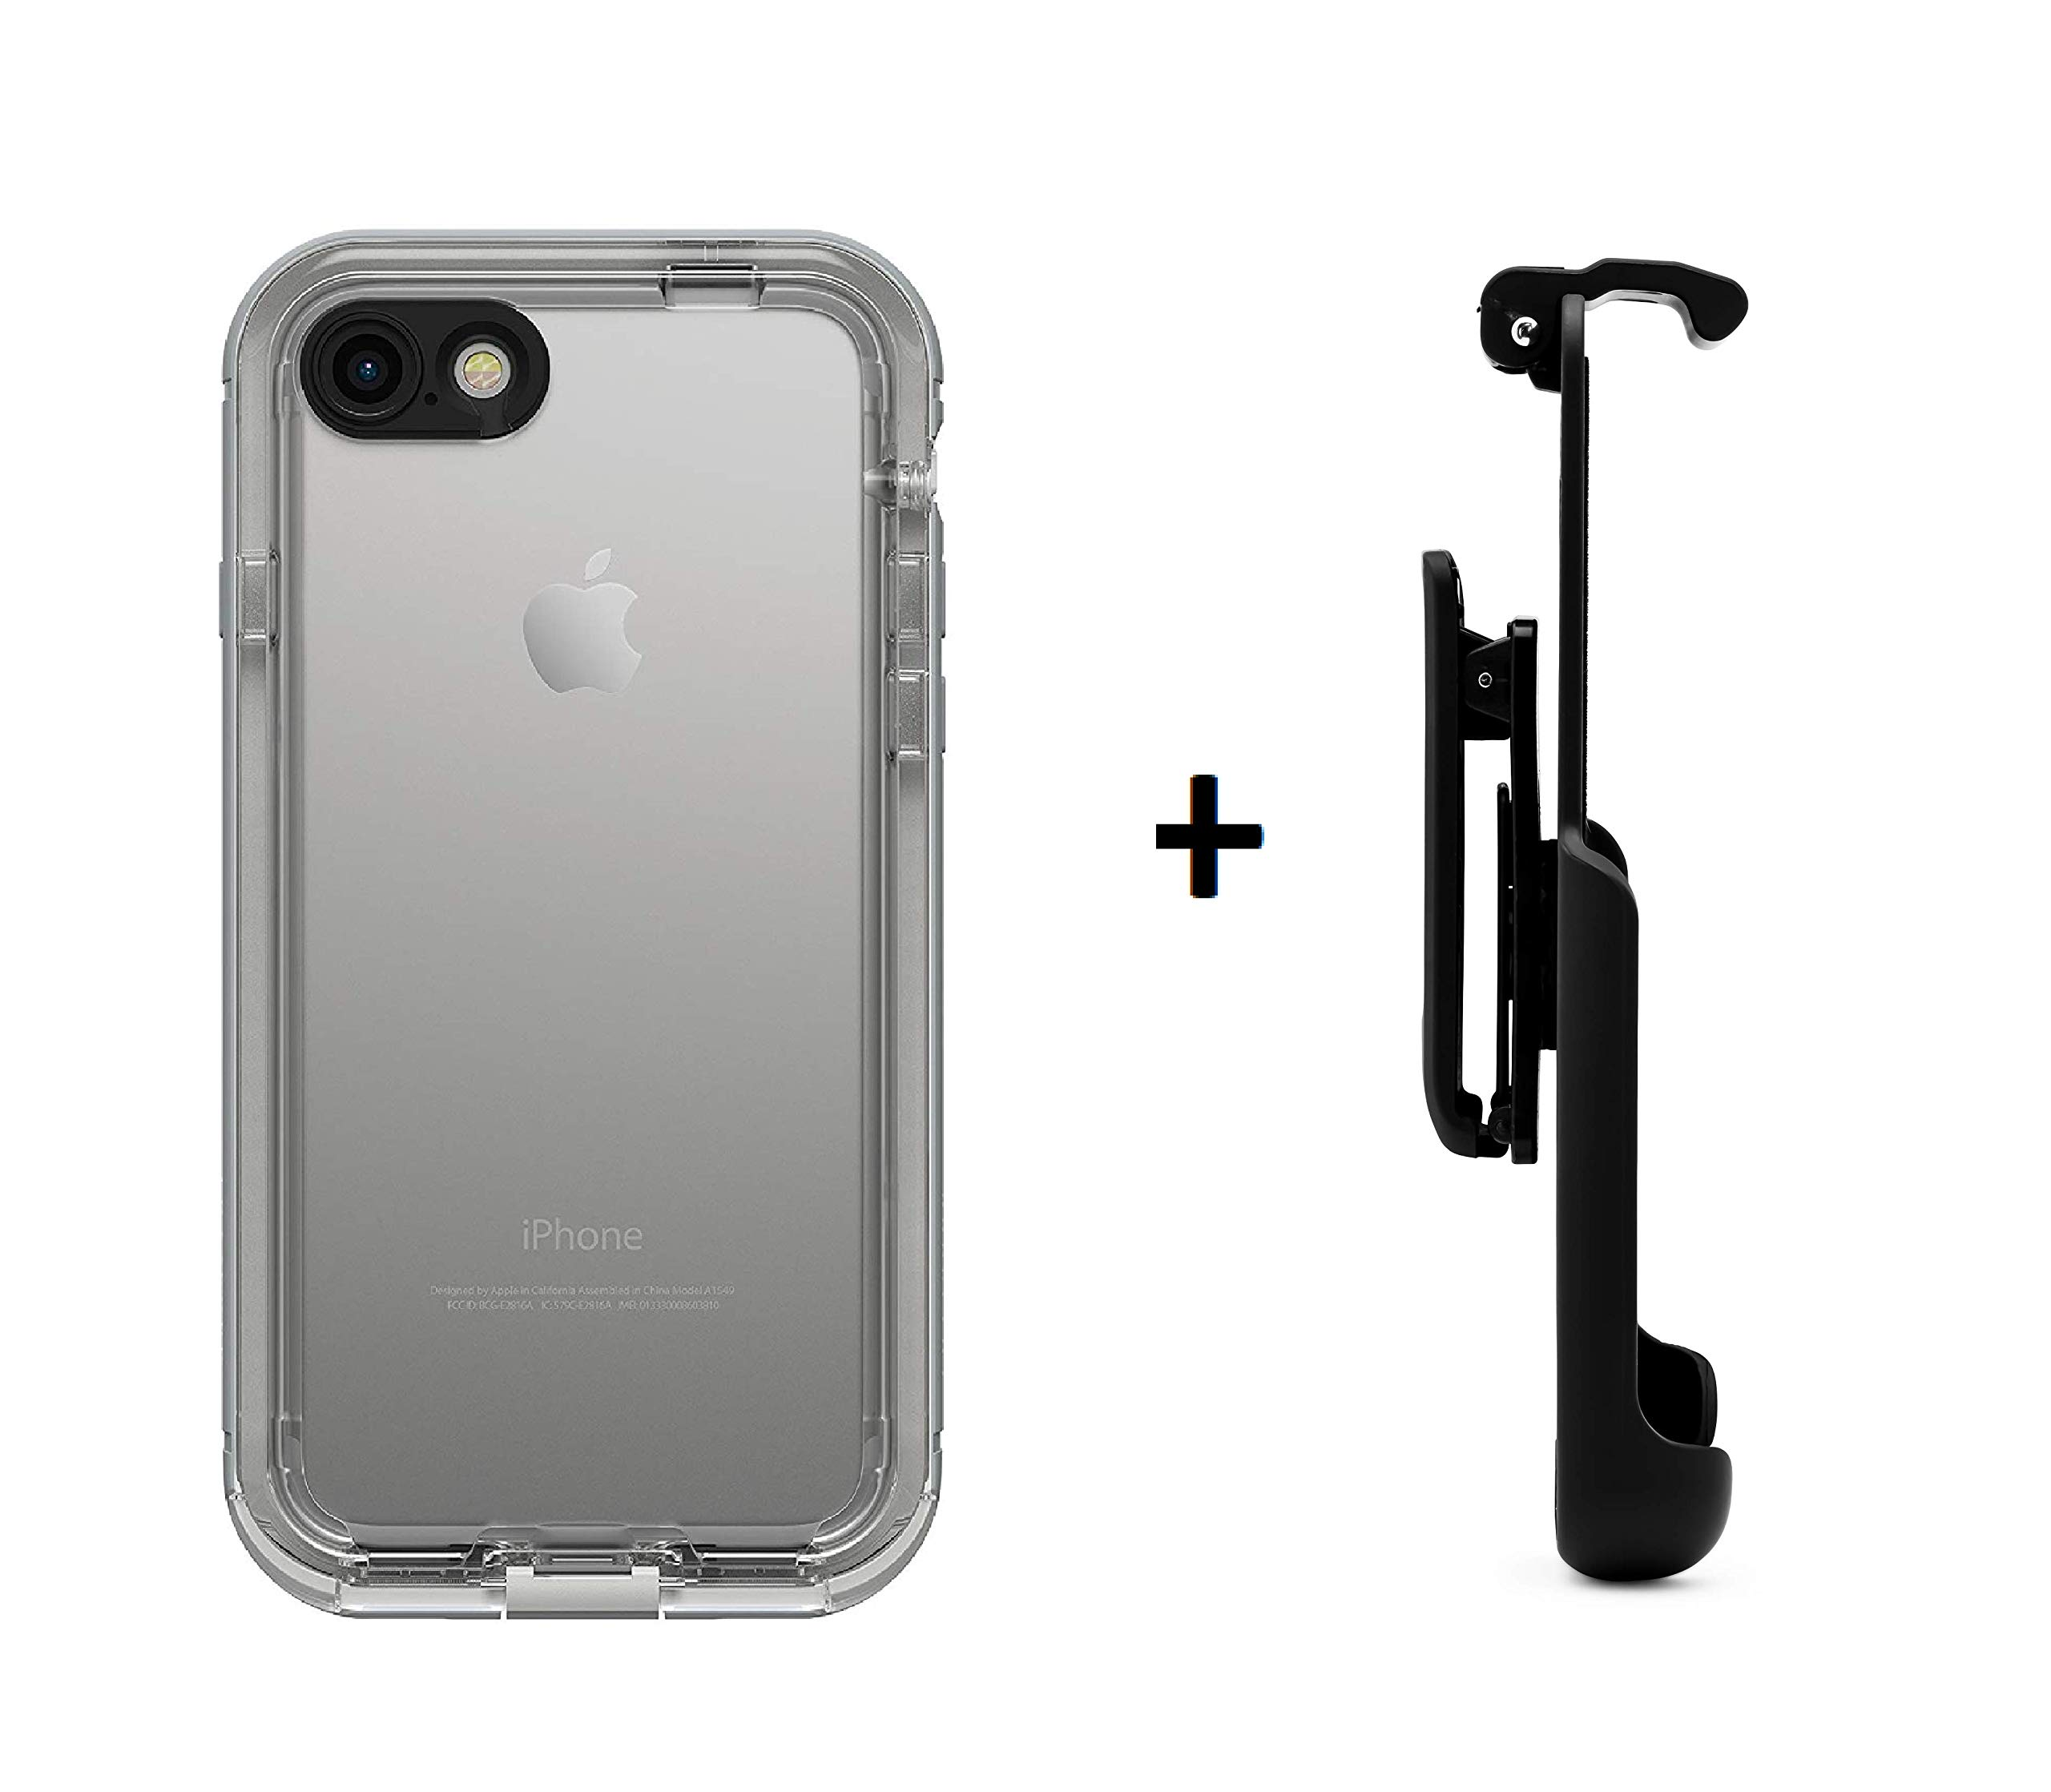 LifeProof NÜÜD Series Waterproof Case for iPhone 7 (ONLY) - SNOWCAPPED (Bright White/Sleet) + Belt Clip Holster